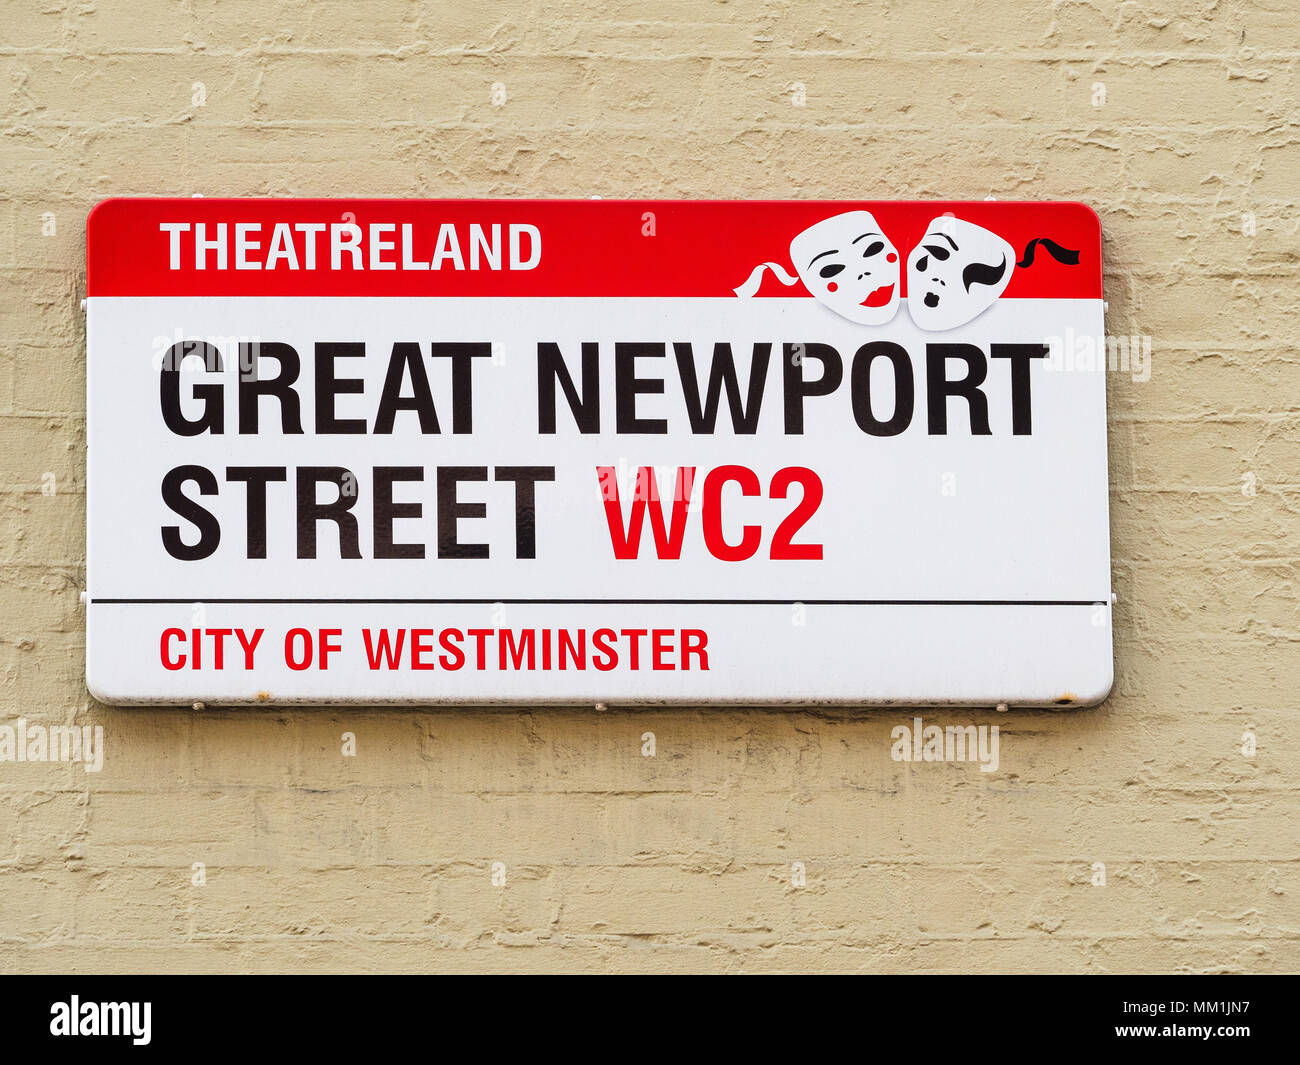 London Street Signs - Great Newport Street in London's Theatreland West End district - Stock Image